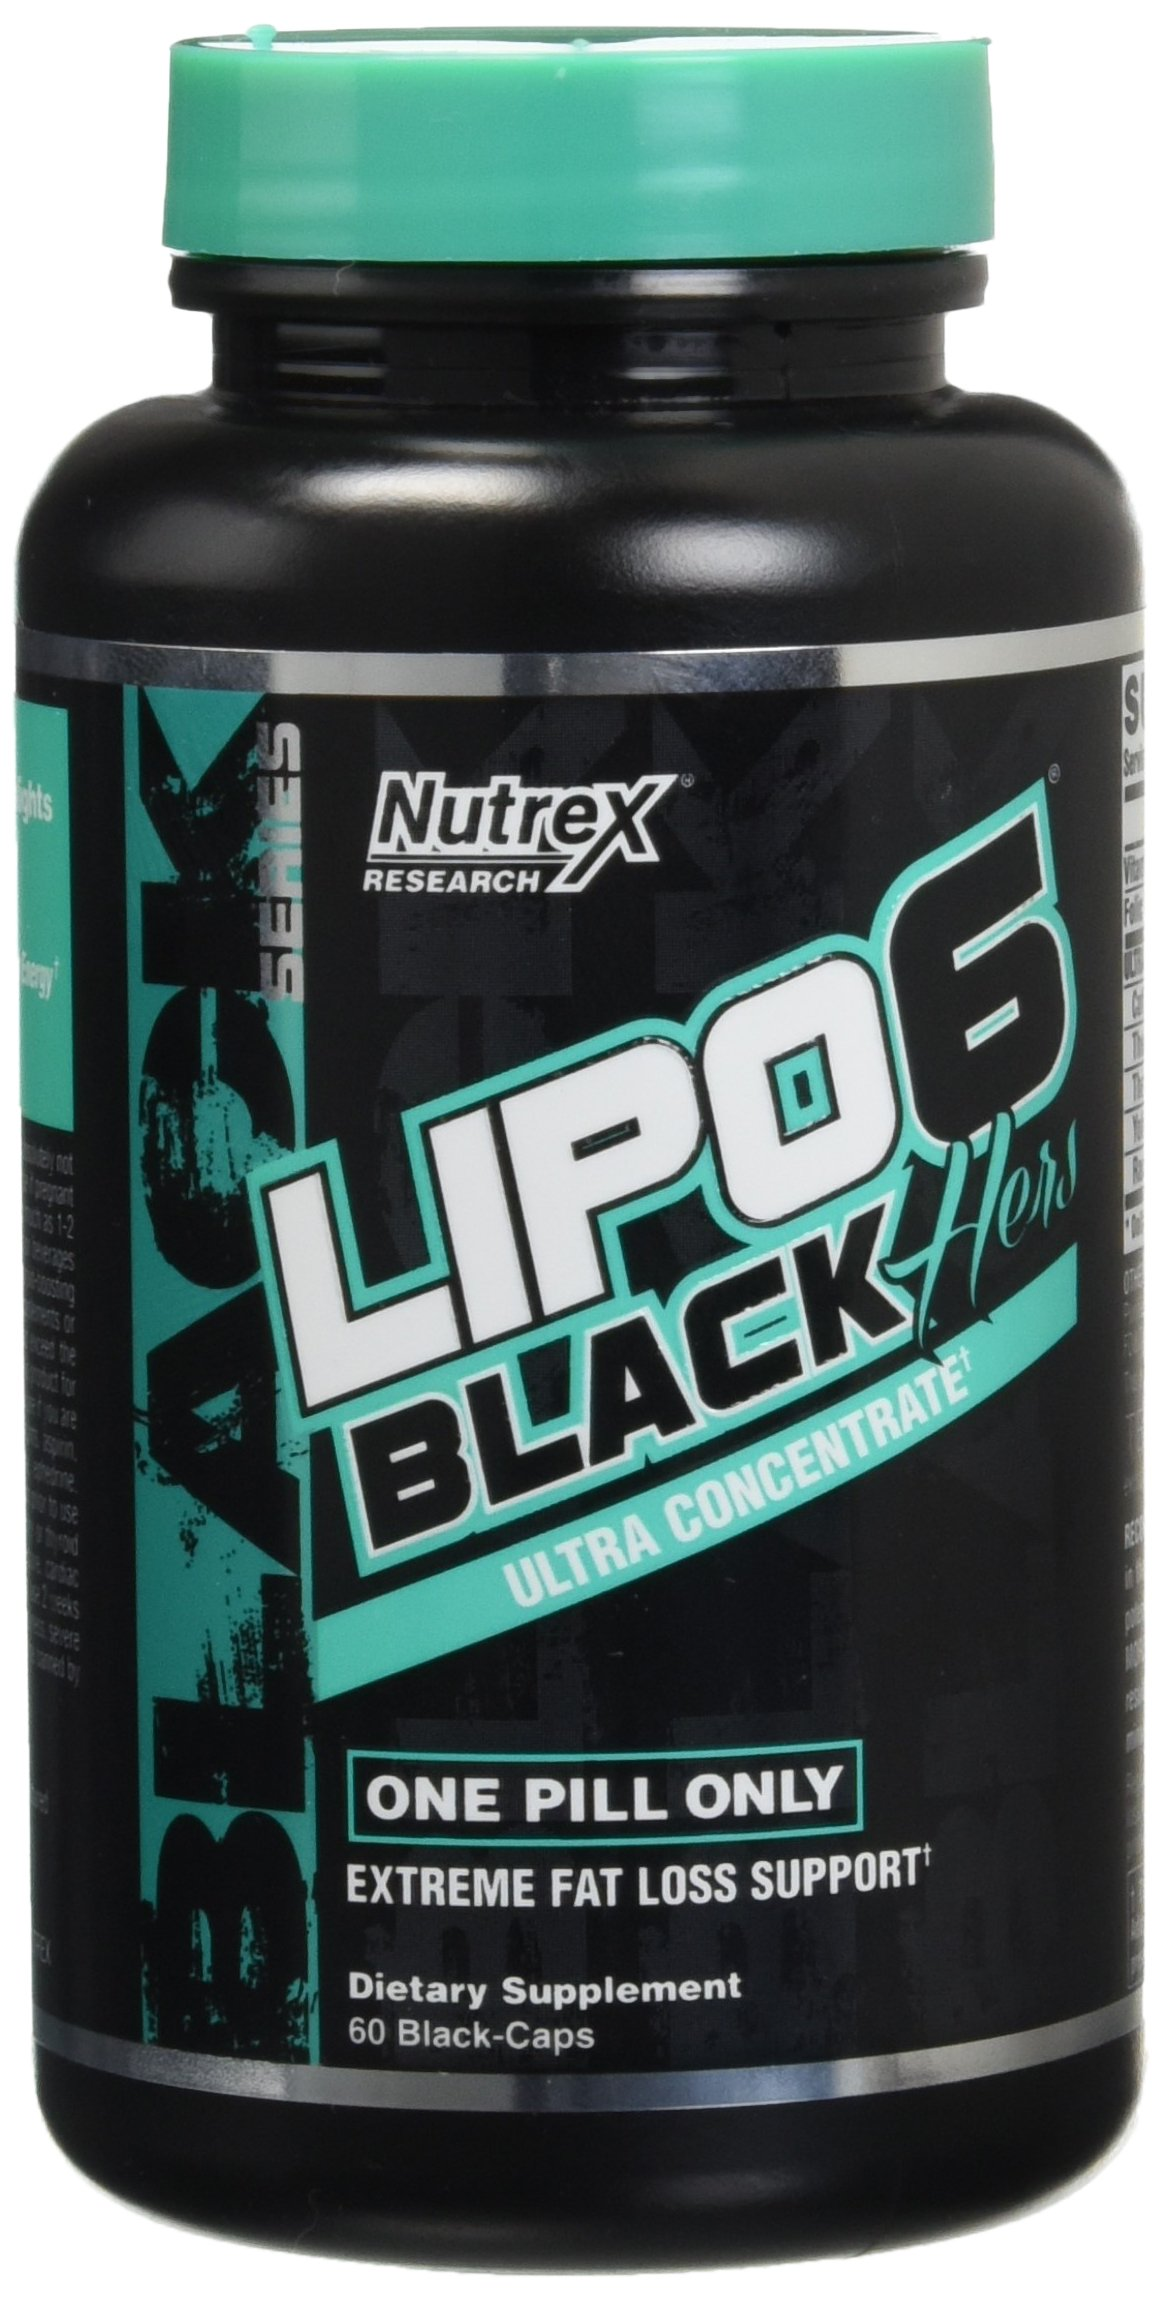 Lipo 6 hers black side effects